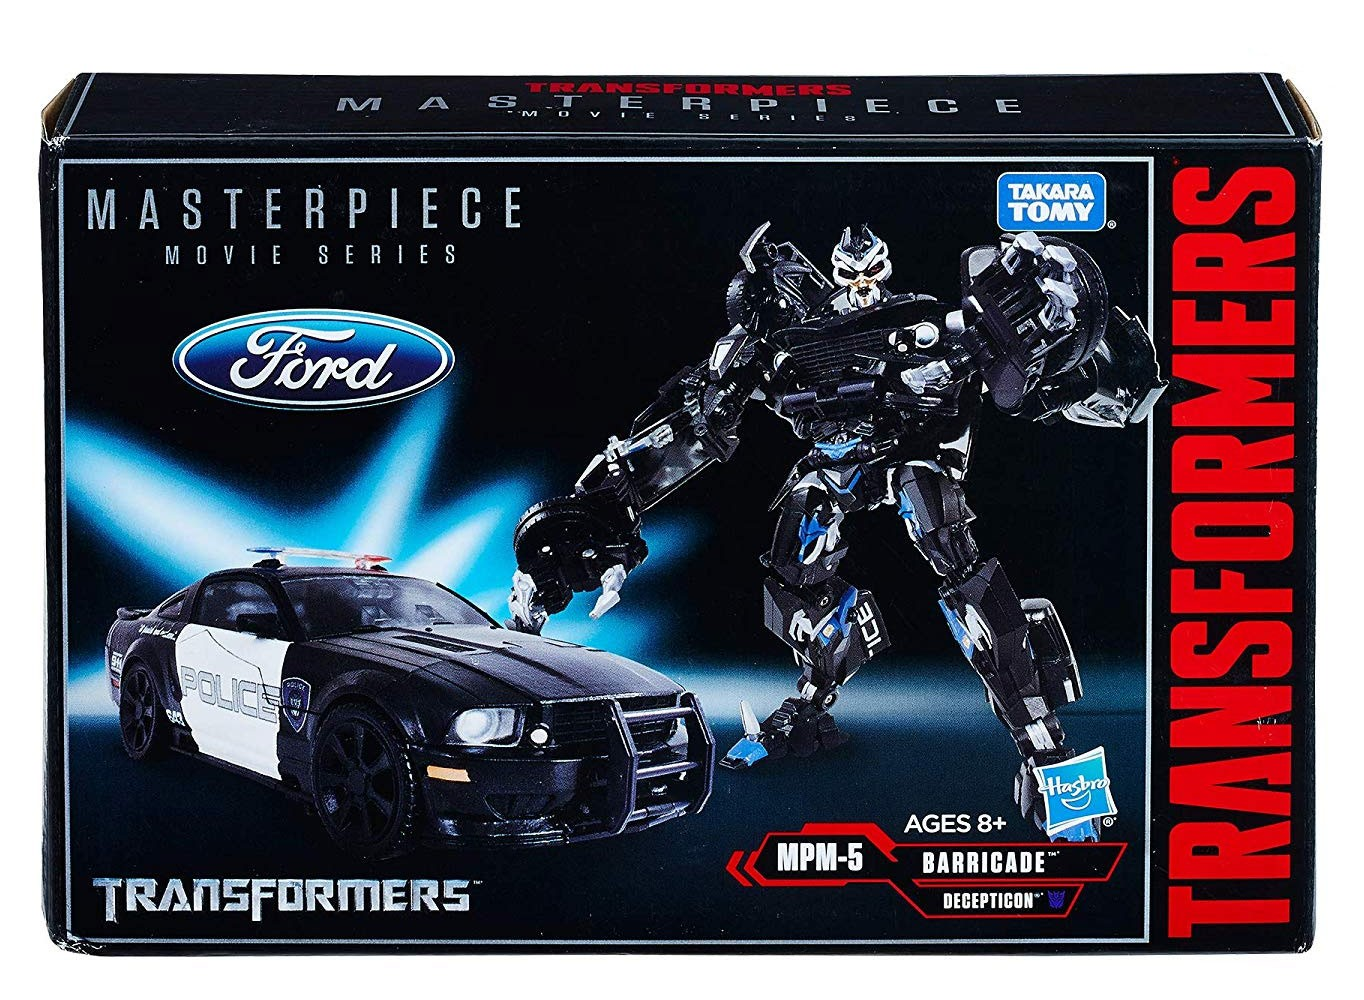 Transformers News: More amazing Amazon.com deals: Transformers Studio Series and MPM-5 Barricade